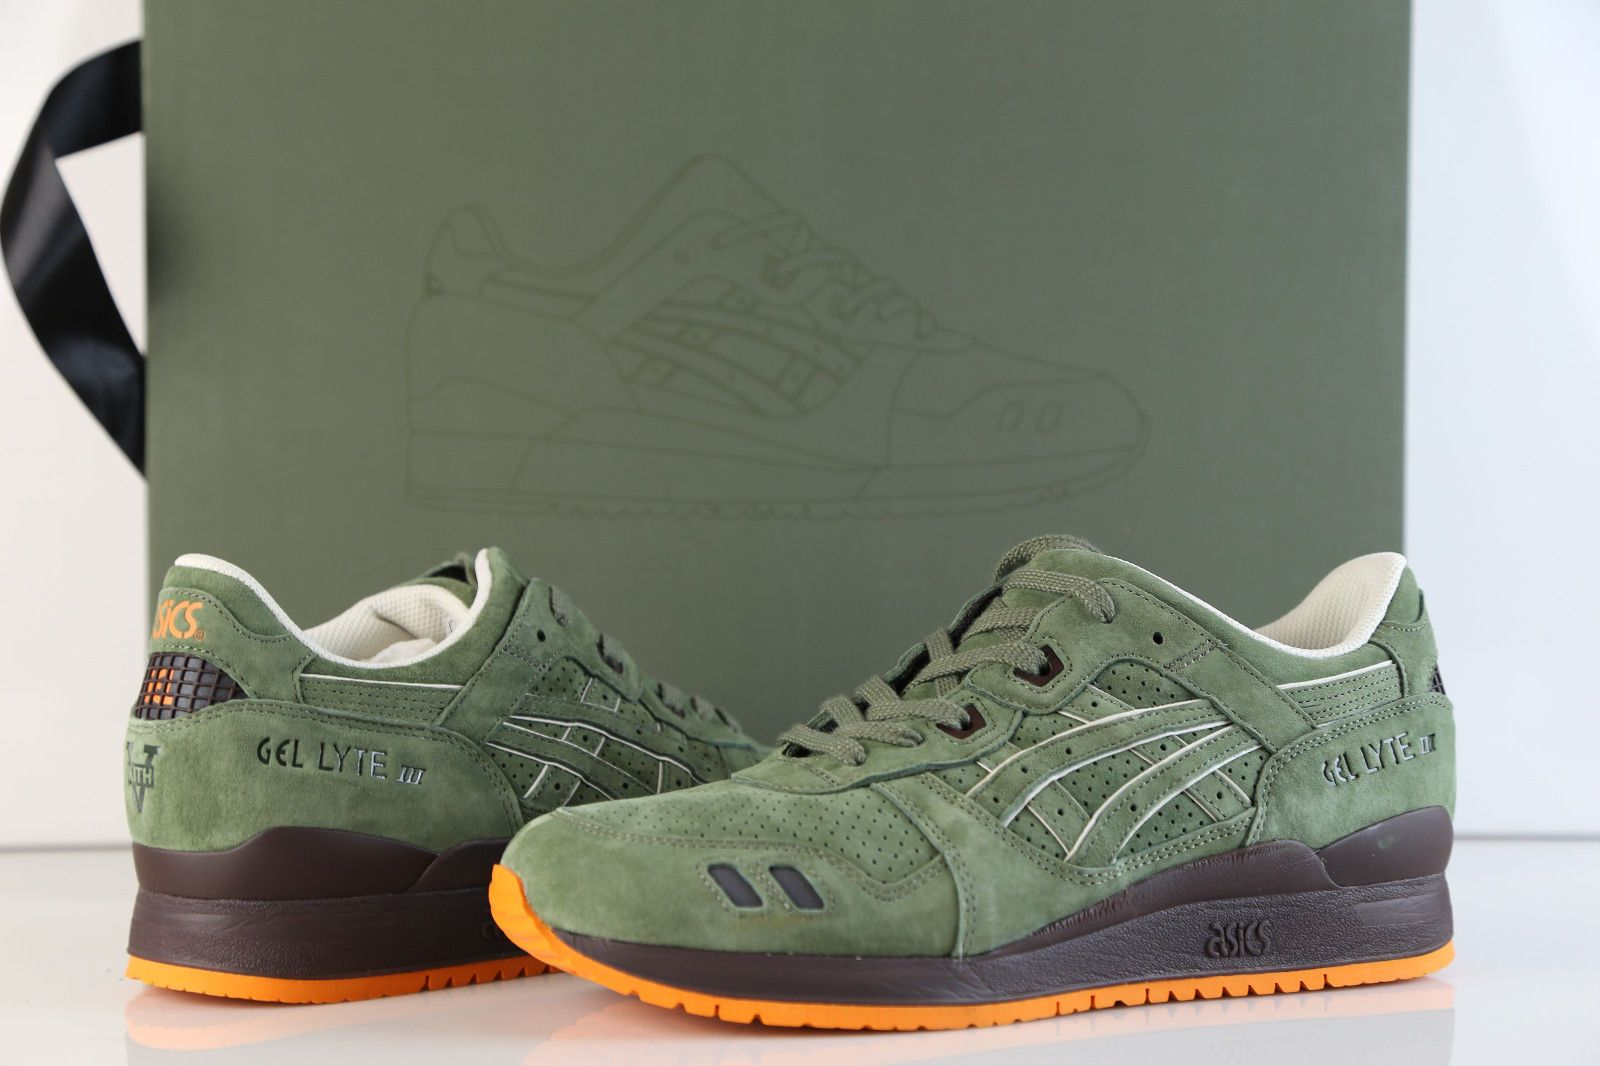 info for 97dd0 179a3 Asics Ronnie Fieg Kith Gel Lyte III Made Japan Militia Green ...